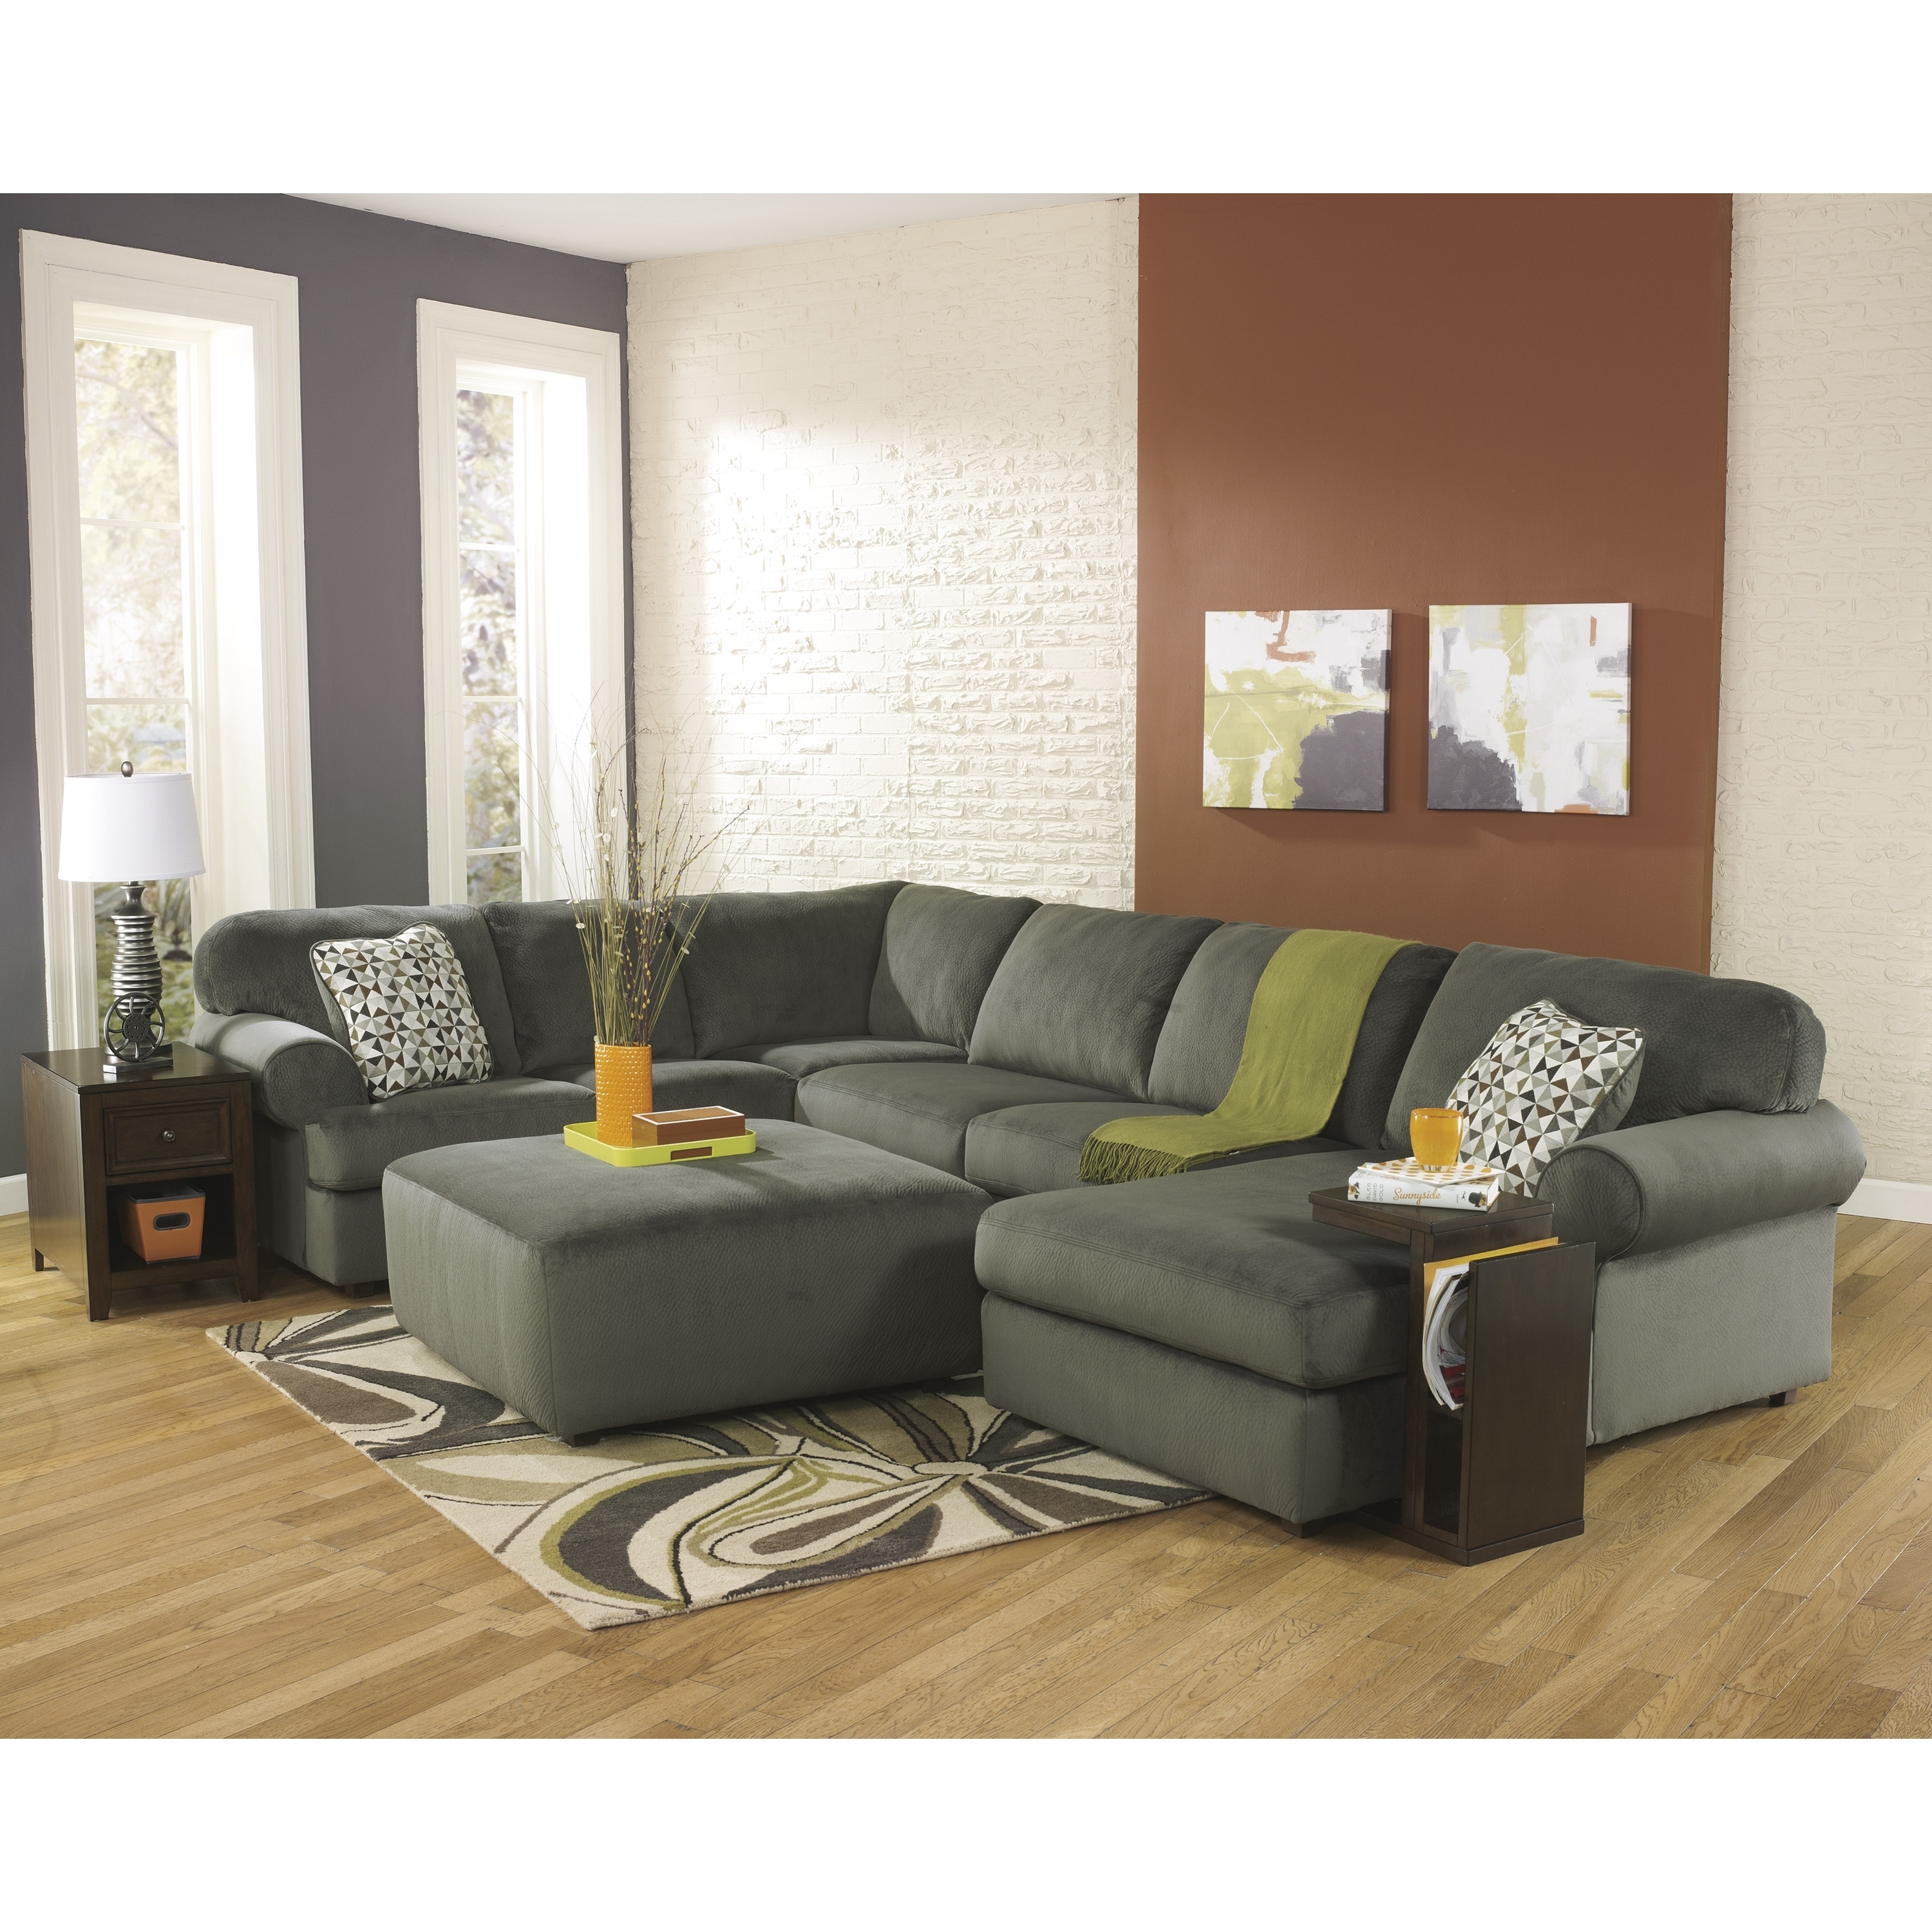 Sears Sectional Sleeper Sofa • Sectional Sofa Throughout Sears Sectional Sofas (Image 7 of 10)